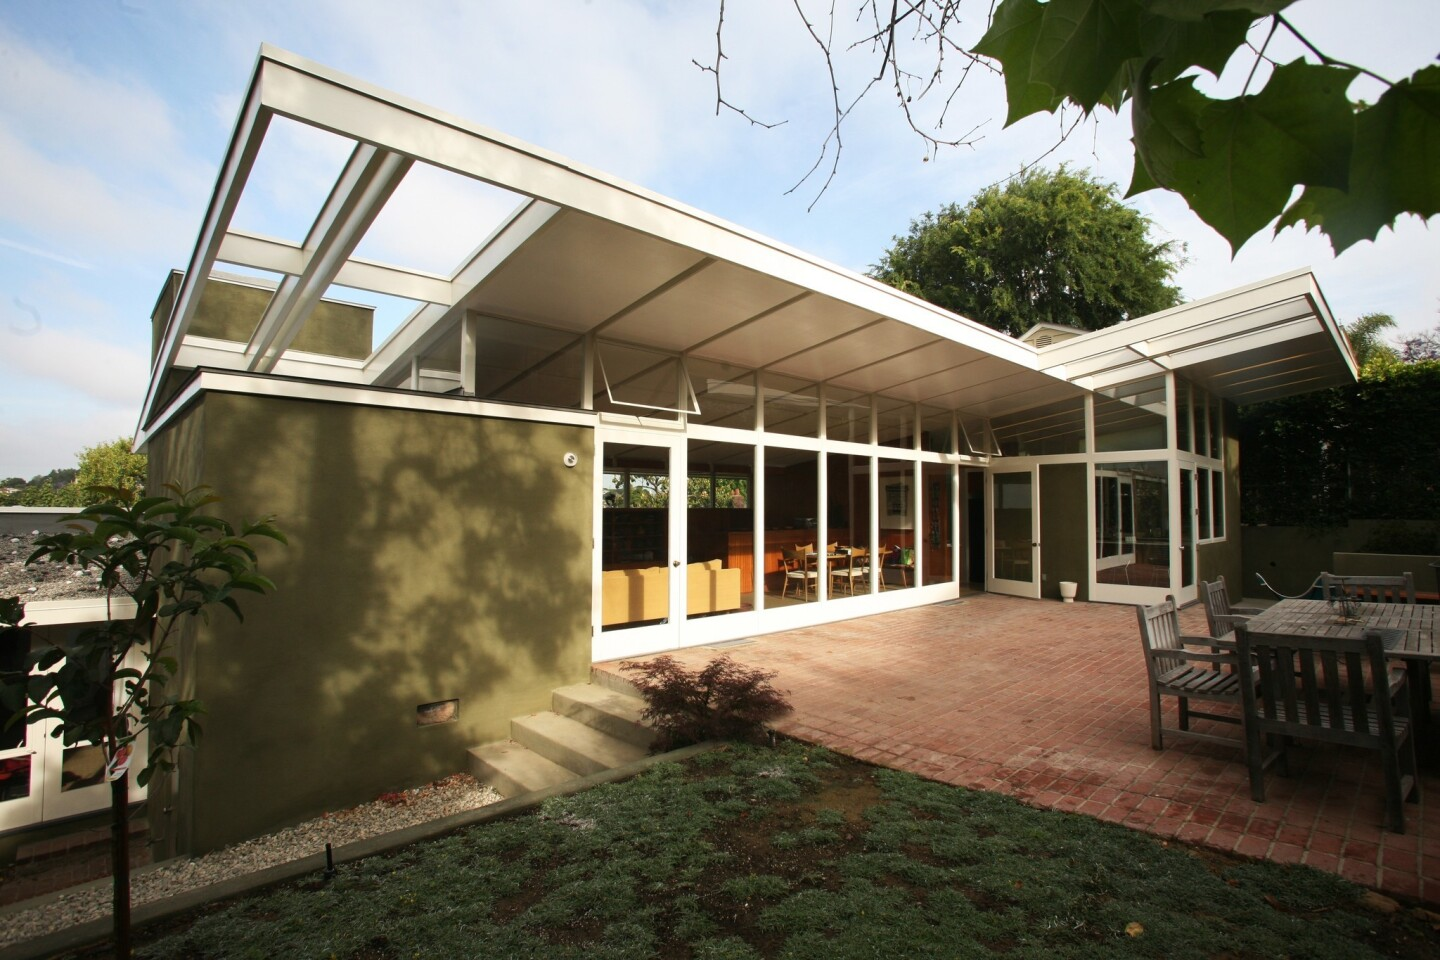 """Tony Unruh and Keith Sidley were South African-born architects with an affinity for midcentury master Gregory Ain. Unruh had bought Ain's old architecture office on Hyperion Avenue; Sidley was living with his family in a Silver Lake home designed and built in the early '40s by Ain. They shared a dream of renovating Sidley's house, but before the restoration could move beyond talk, Sidley died from a brain tumor, leaving his wife, Kathleen Nolen, to contemplate the task before her. """"I loved the house and wanted it to live forever,"""" Nolen said."""